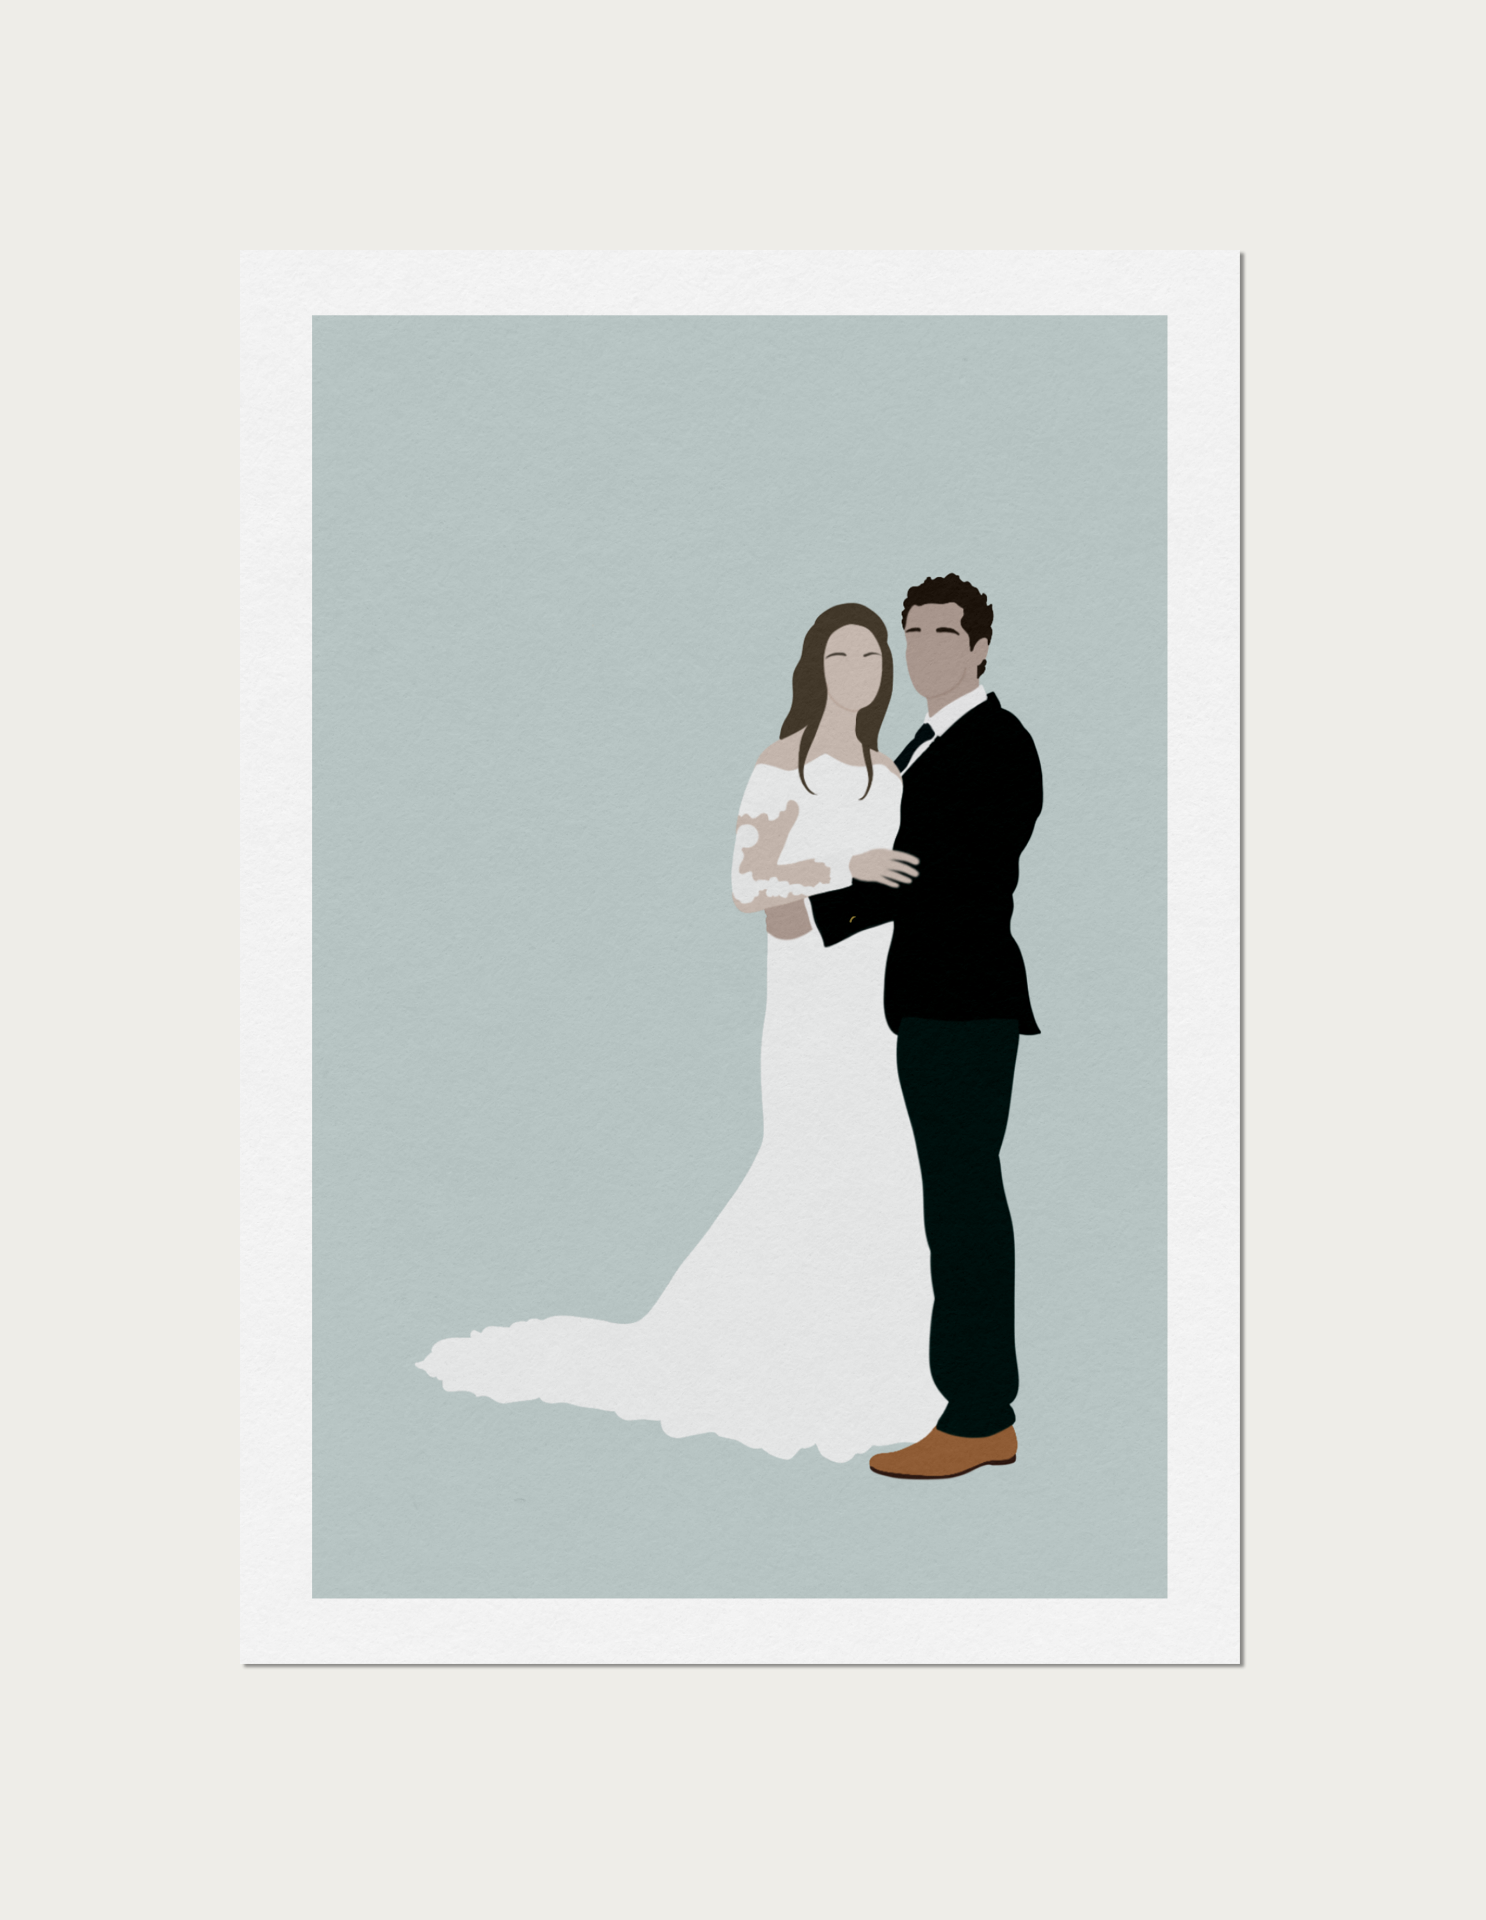 Couple of their wedding day illustration